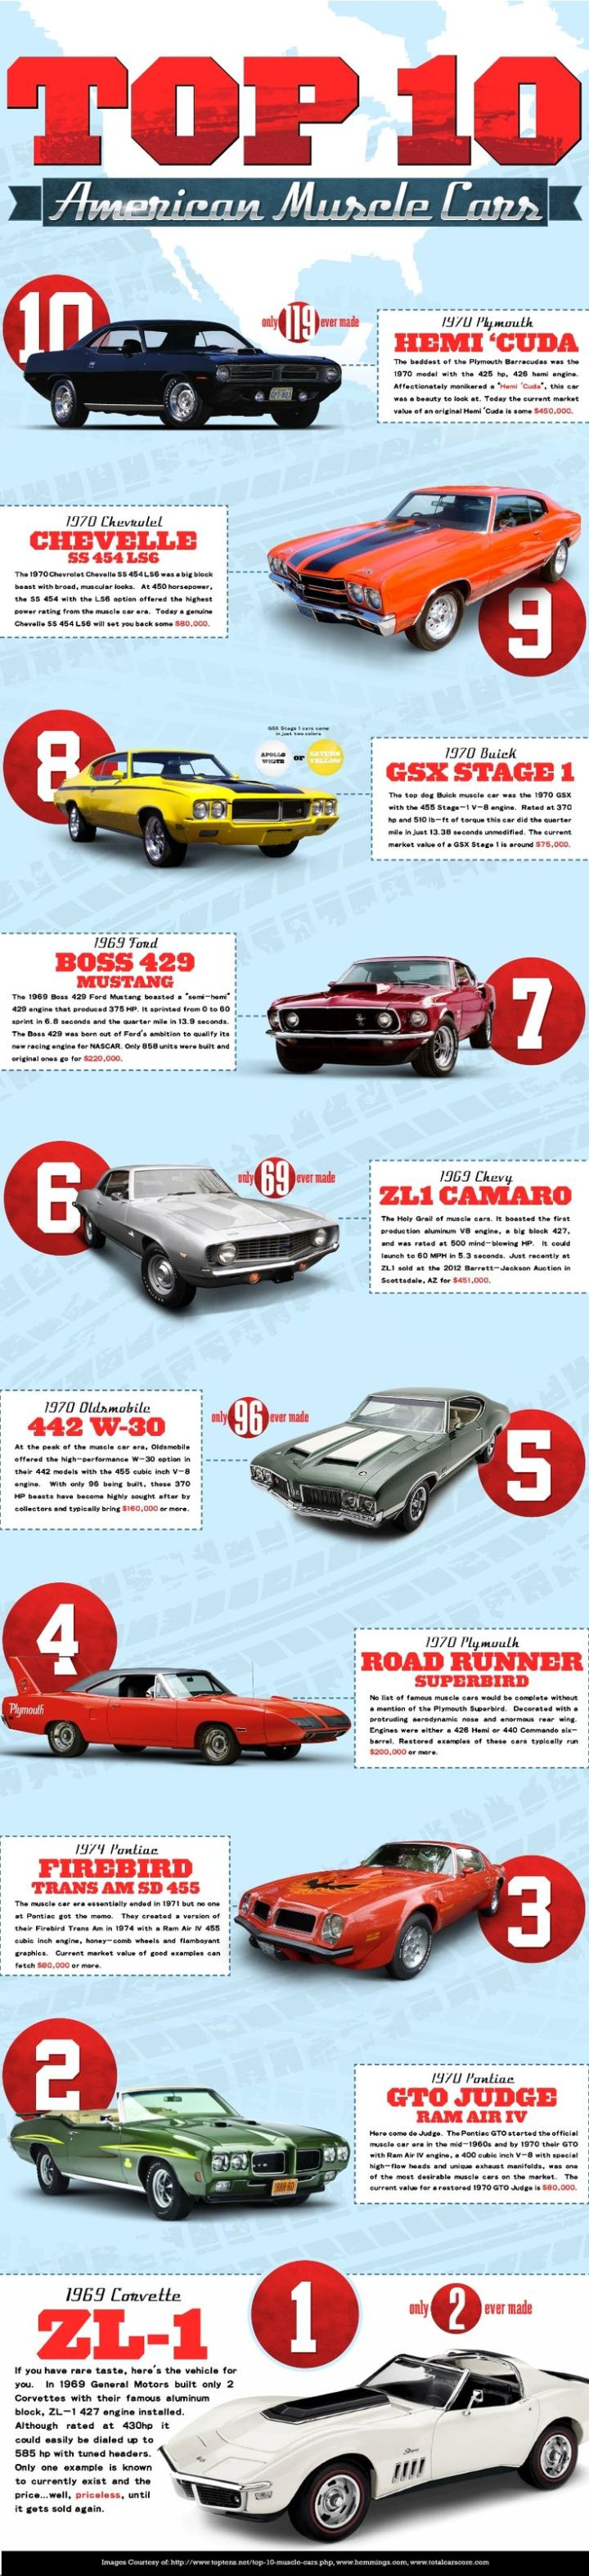 old car list | Carsjp.com